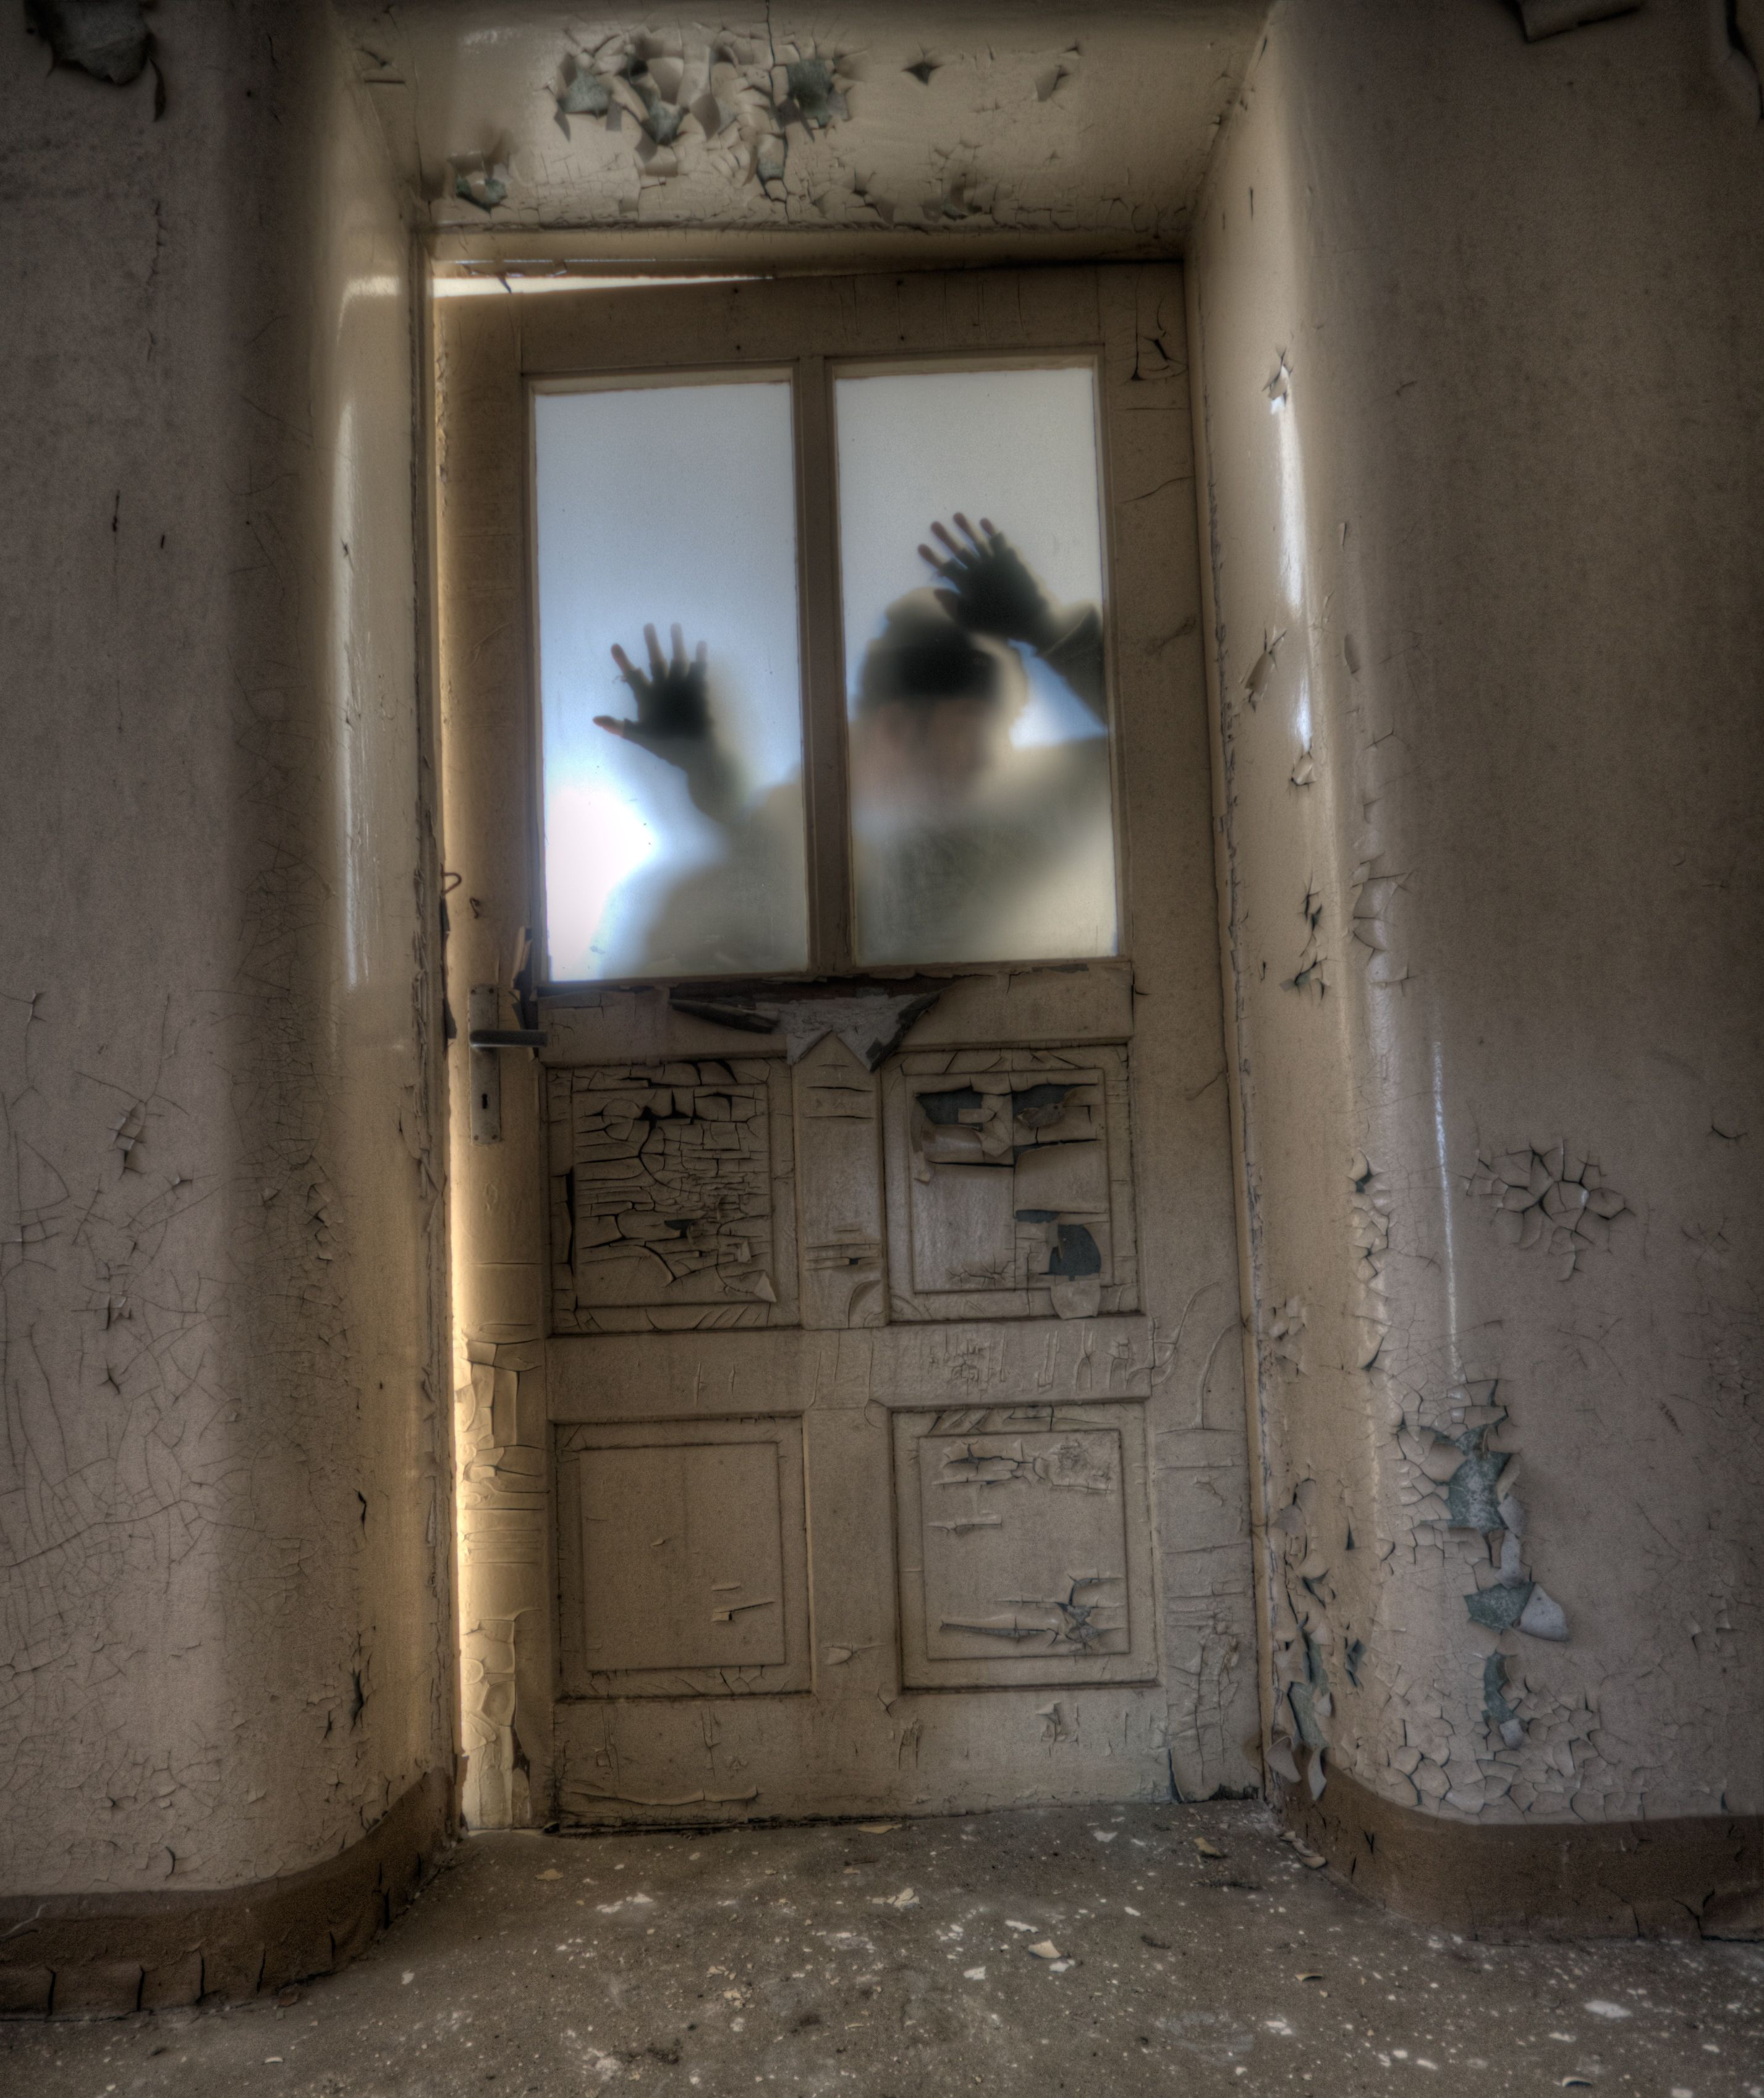 A hand placed against a door